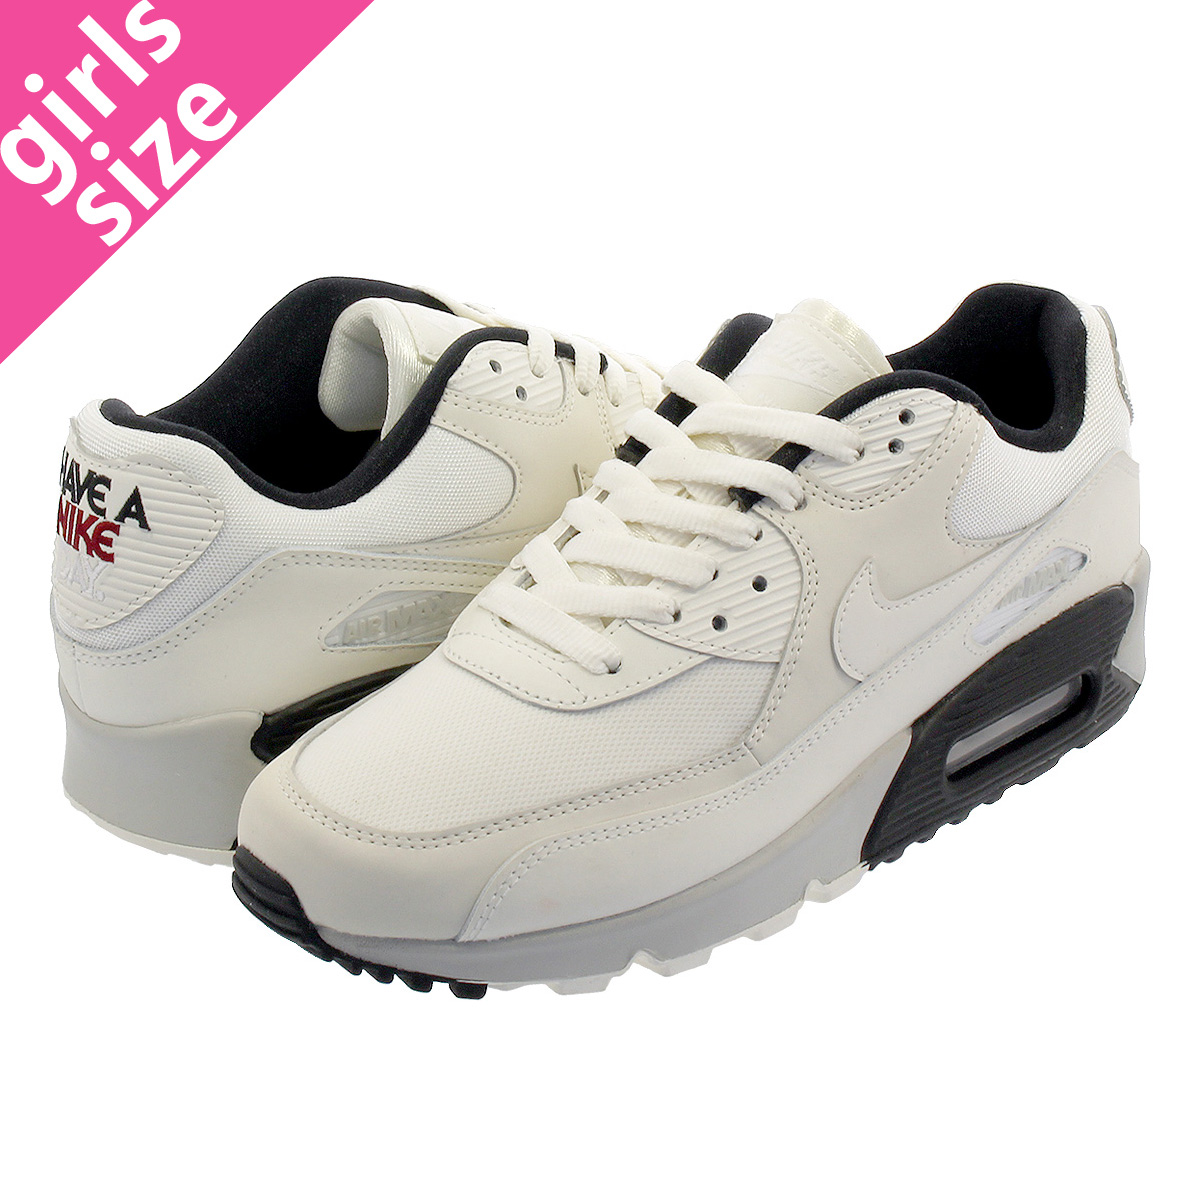 Sneakers Women's Shoes Shoes 60items | Rakuten Global